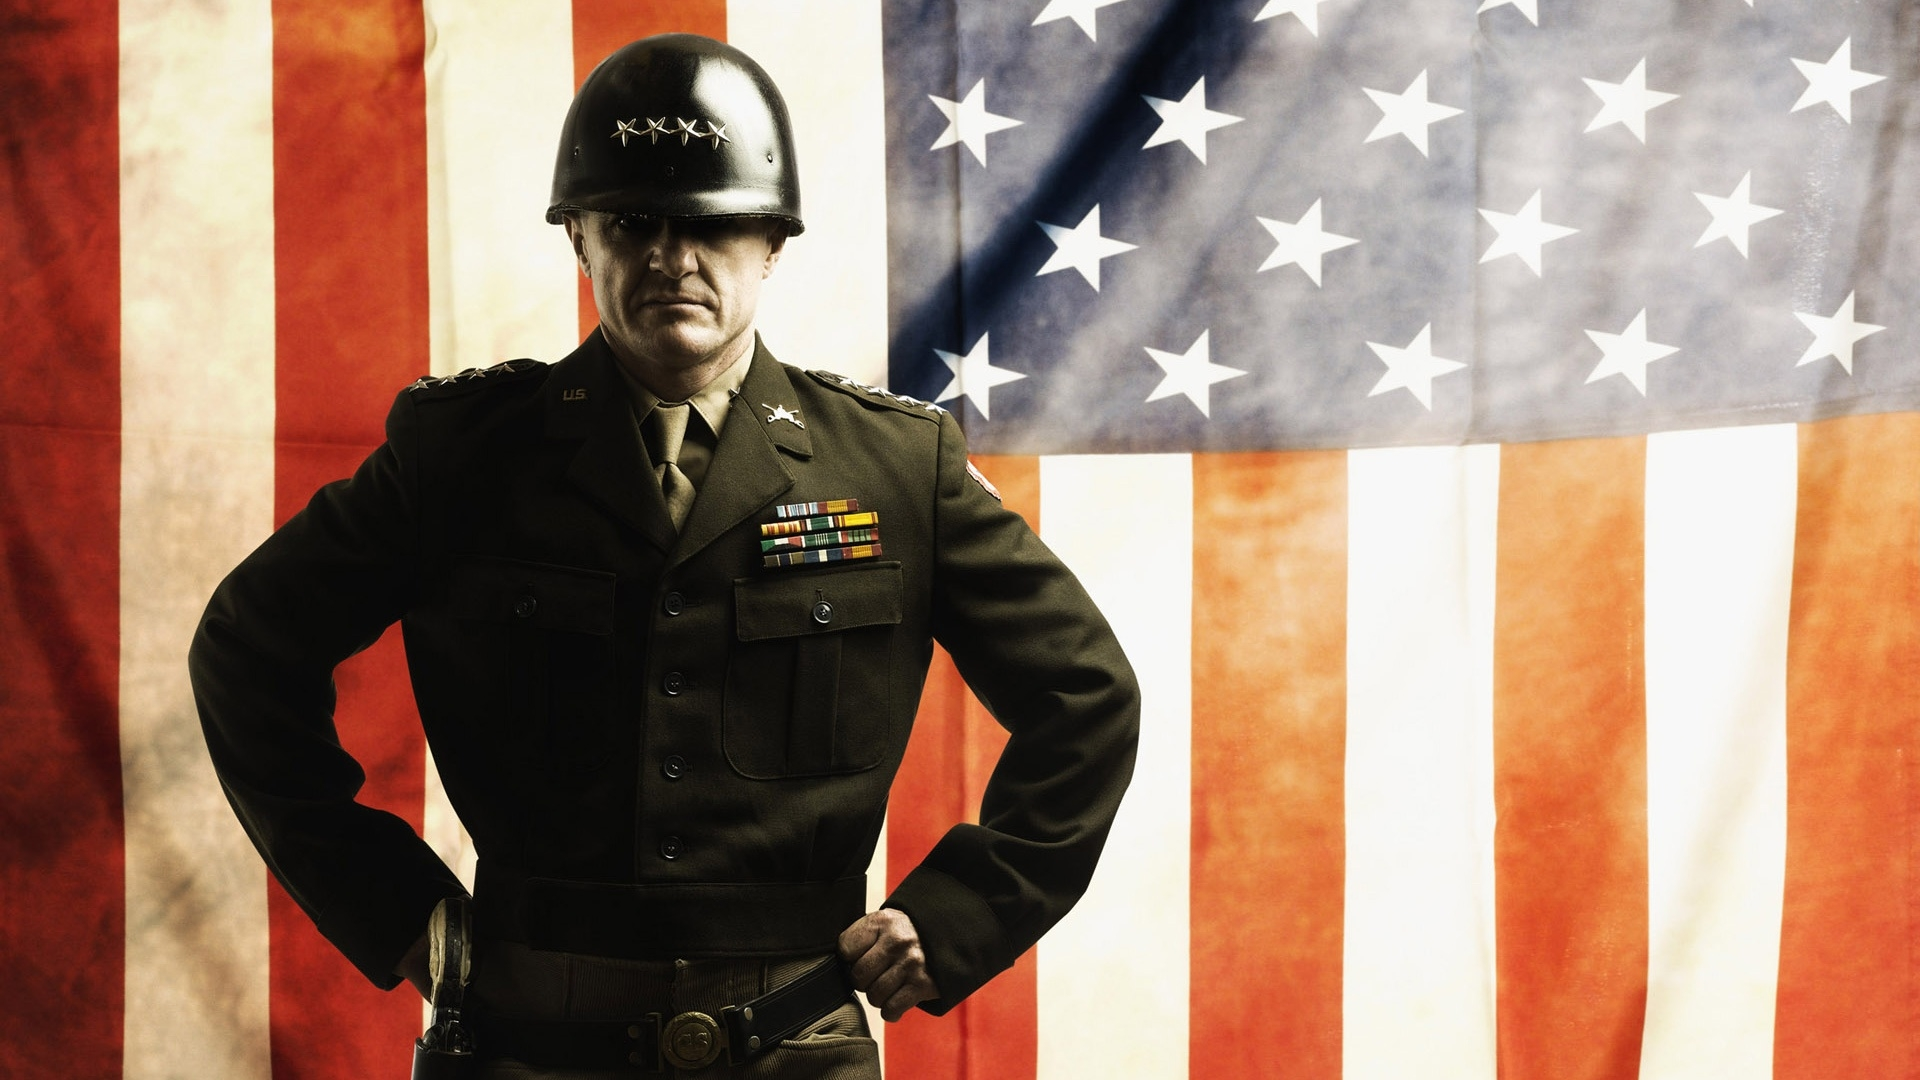 American soldier   High Definition Wallpapers   HD wallpapers 1920x1080